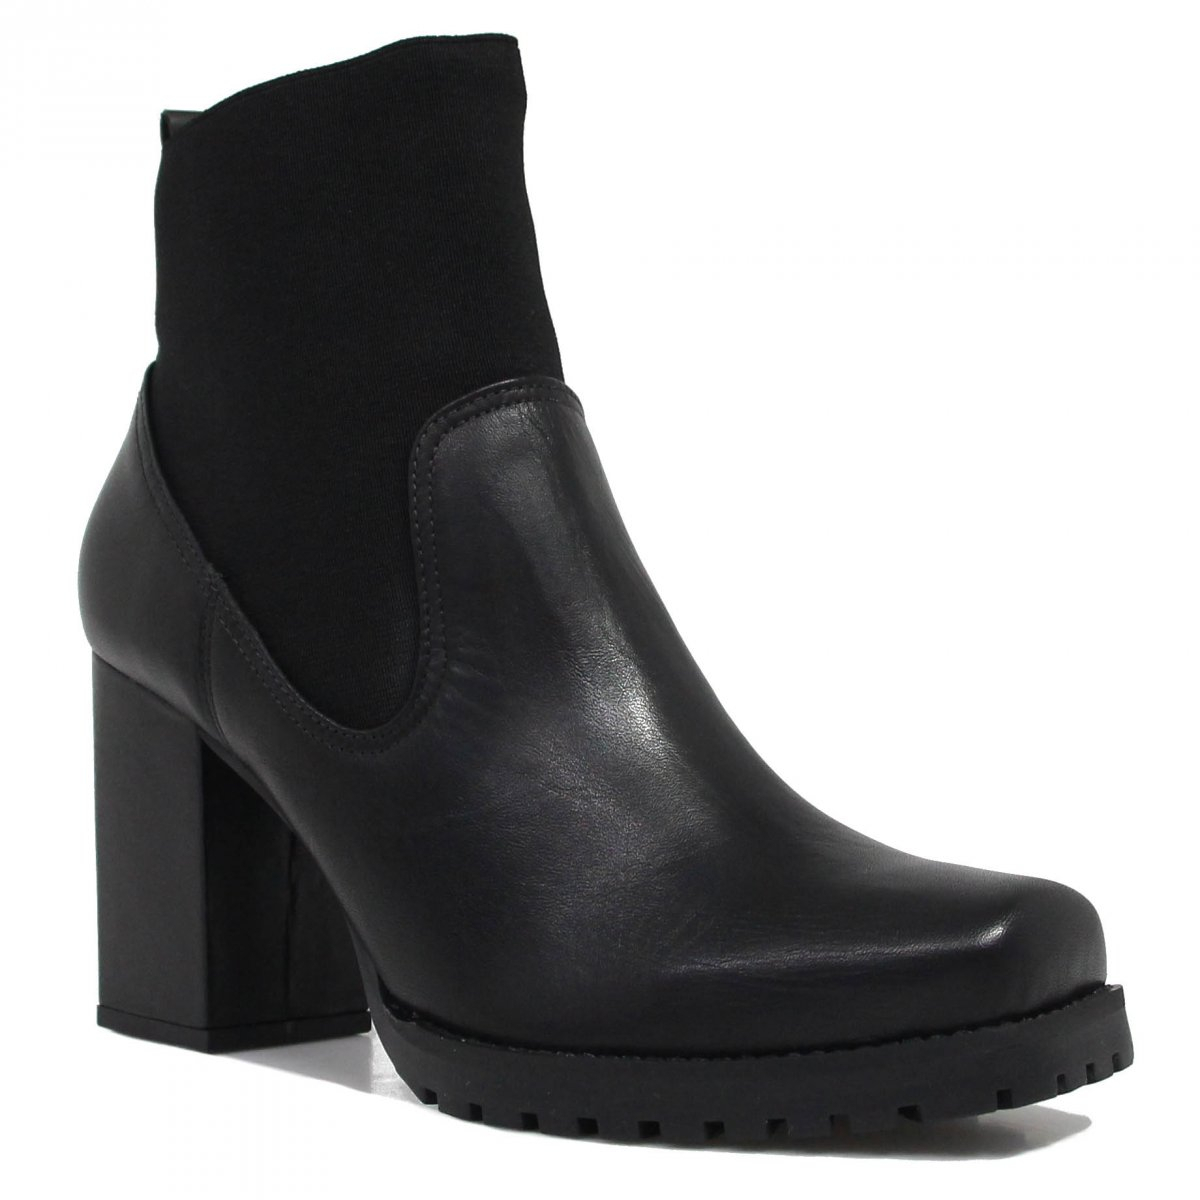 Bota Zariff Shoes Coturno Salto Preto